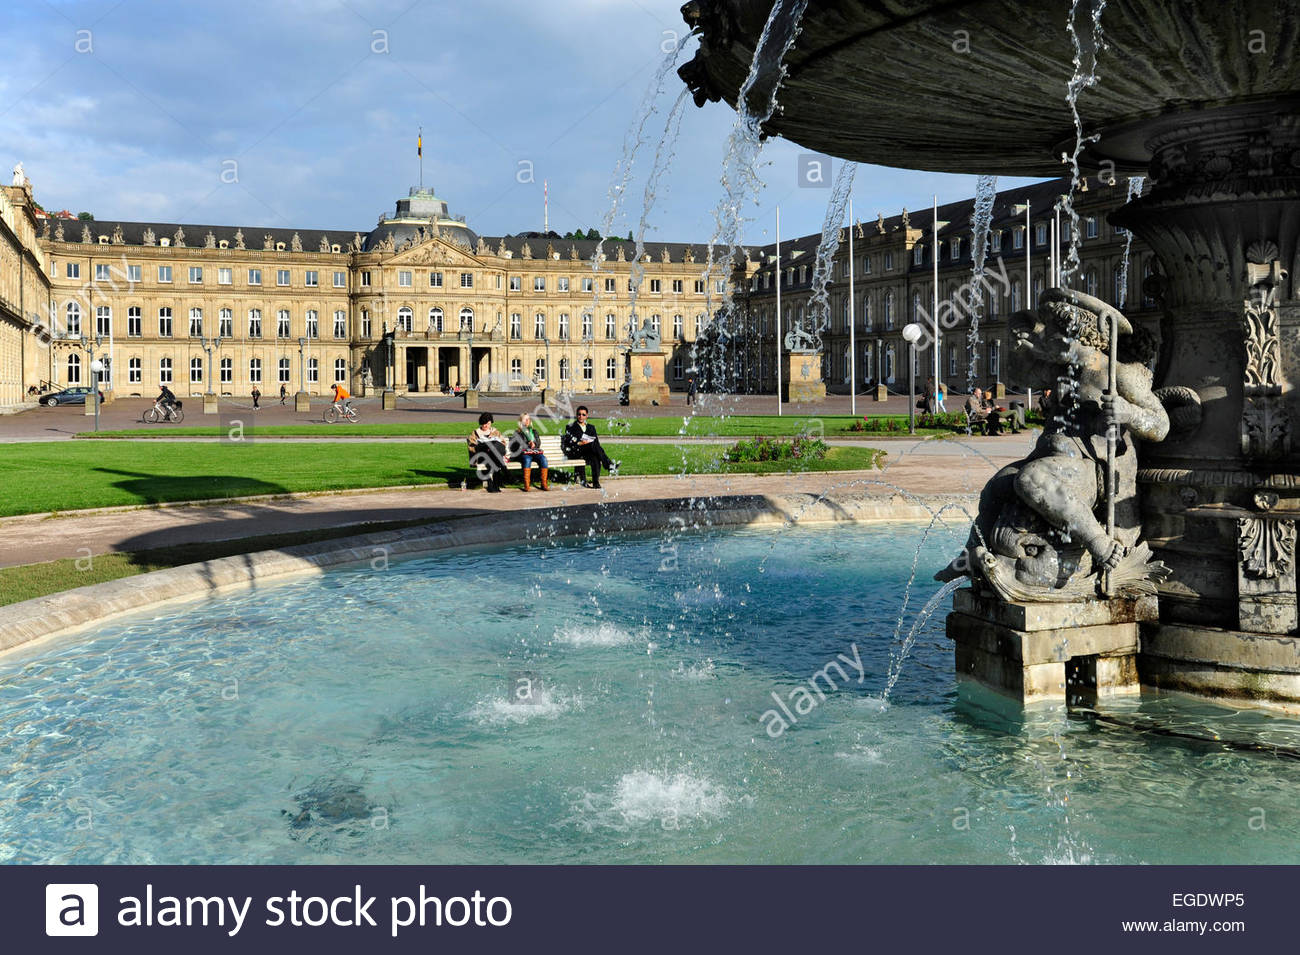 New palace, Neues Schloss behind fountain, domicile of the ministry of finance, palace at the Schlossplatz square, - Stock Image